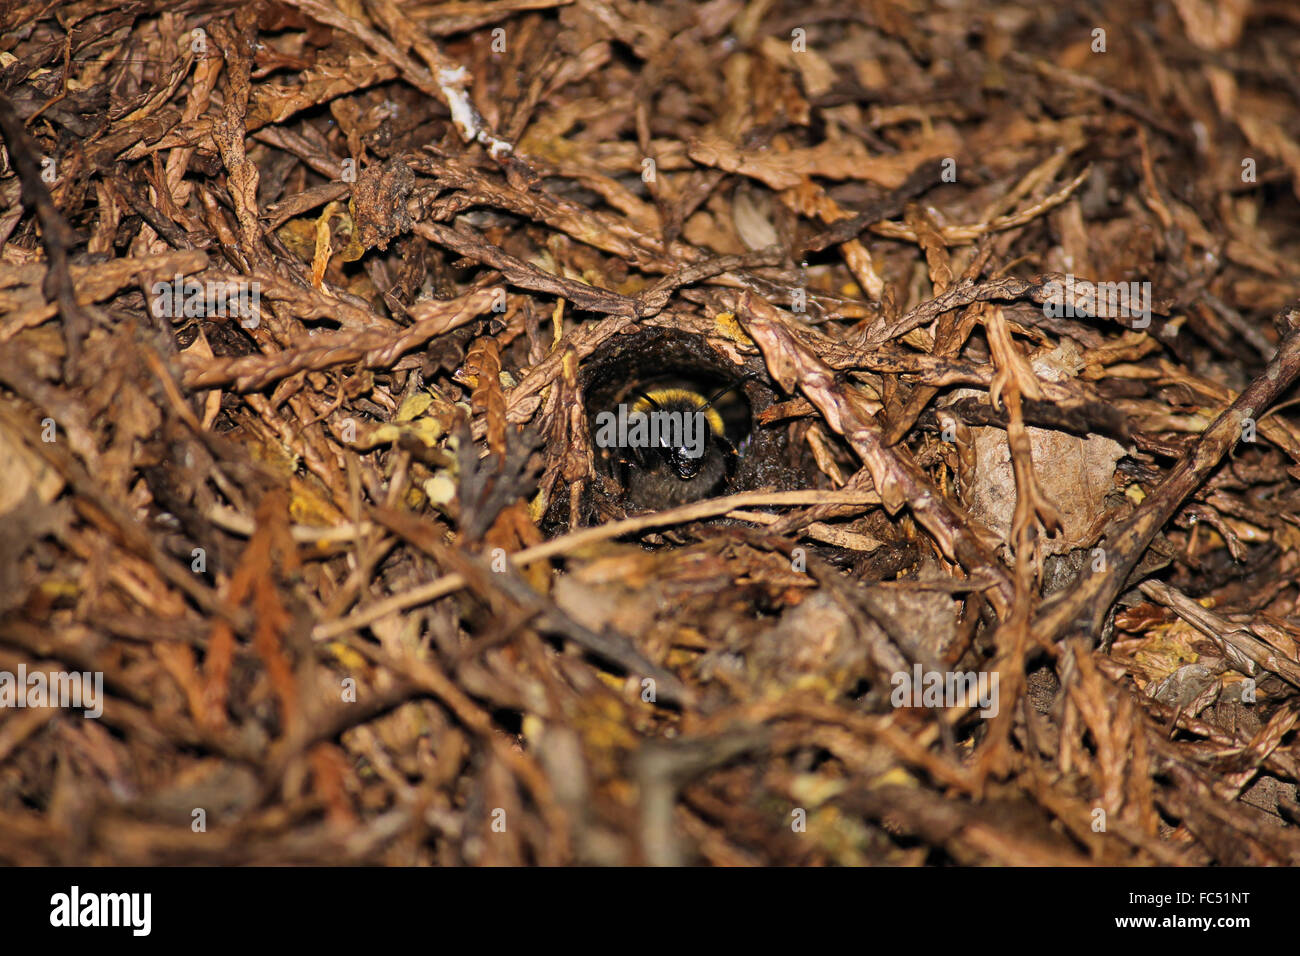 bumble bee emerging from hive from under the ground stock photo